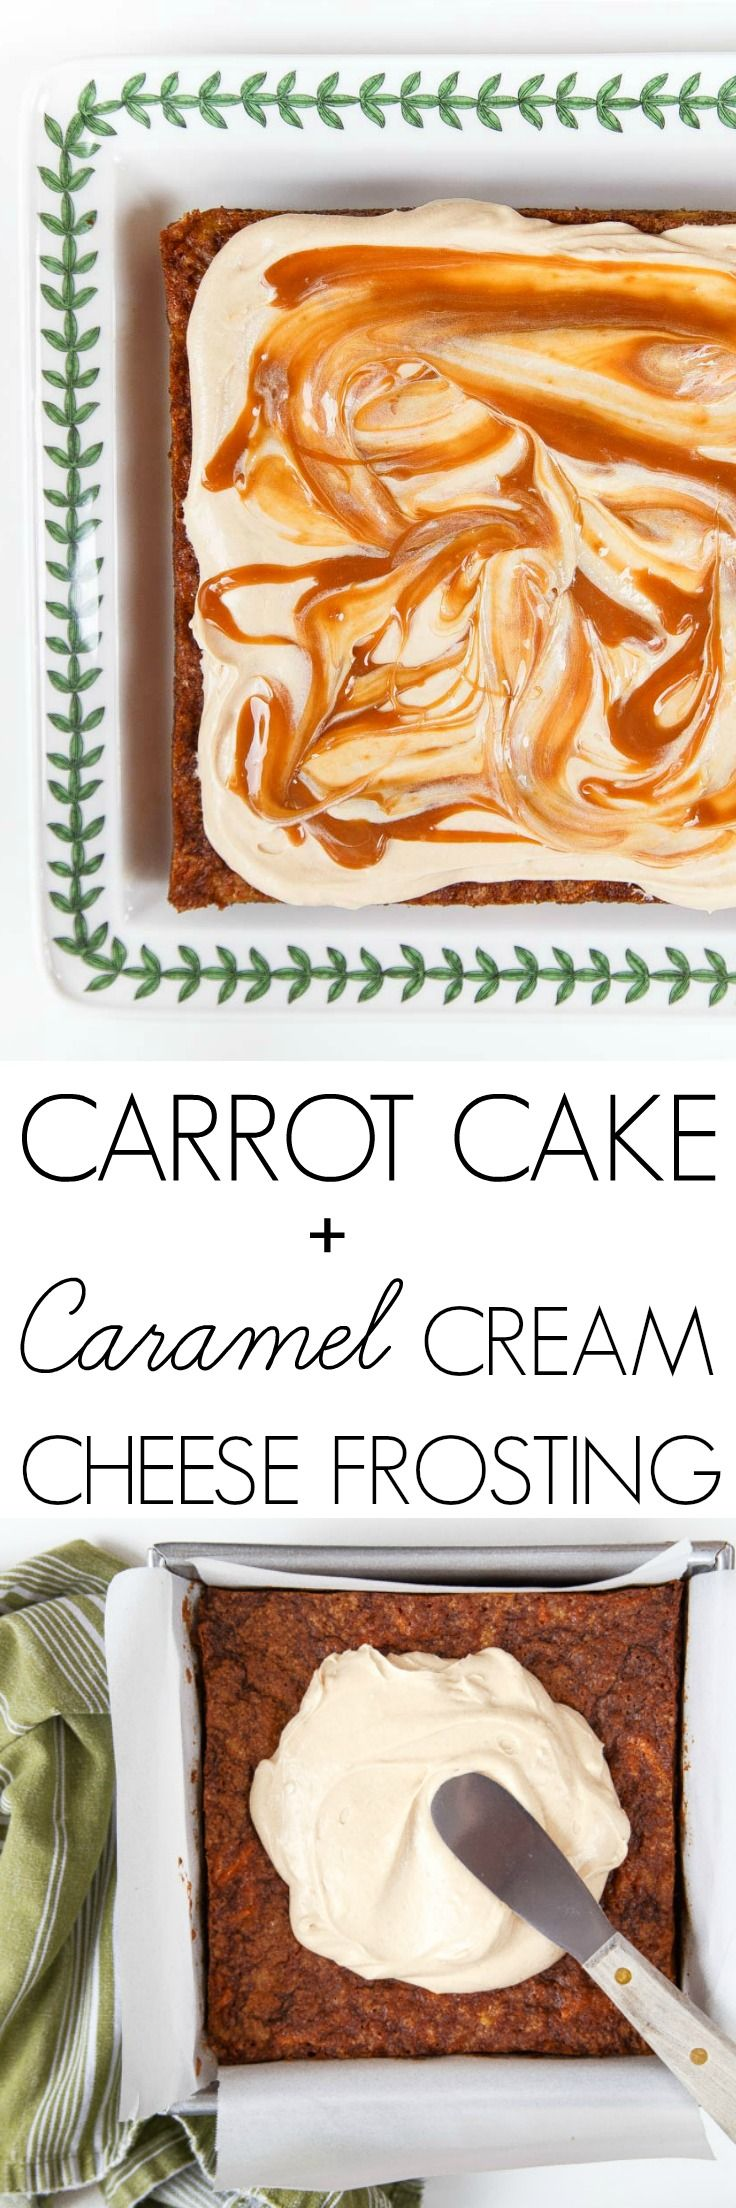 One layer carrot cake with caramel cream cheese frosting for Easter dinner! @DessertForTwo